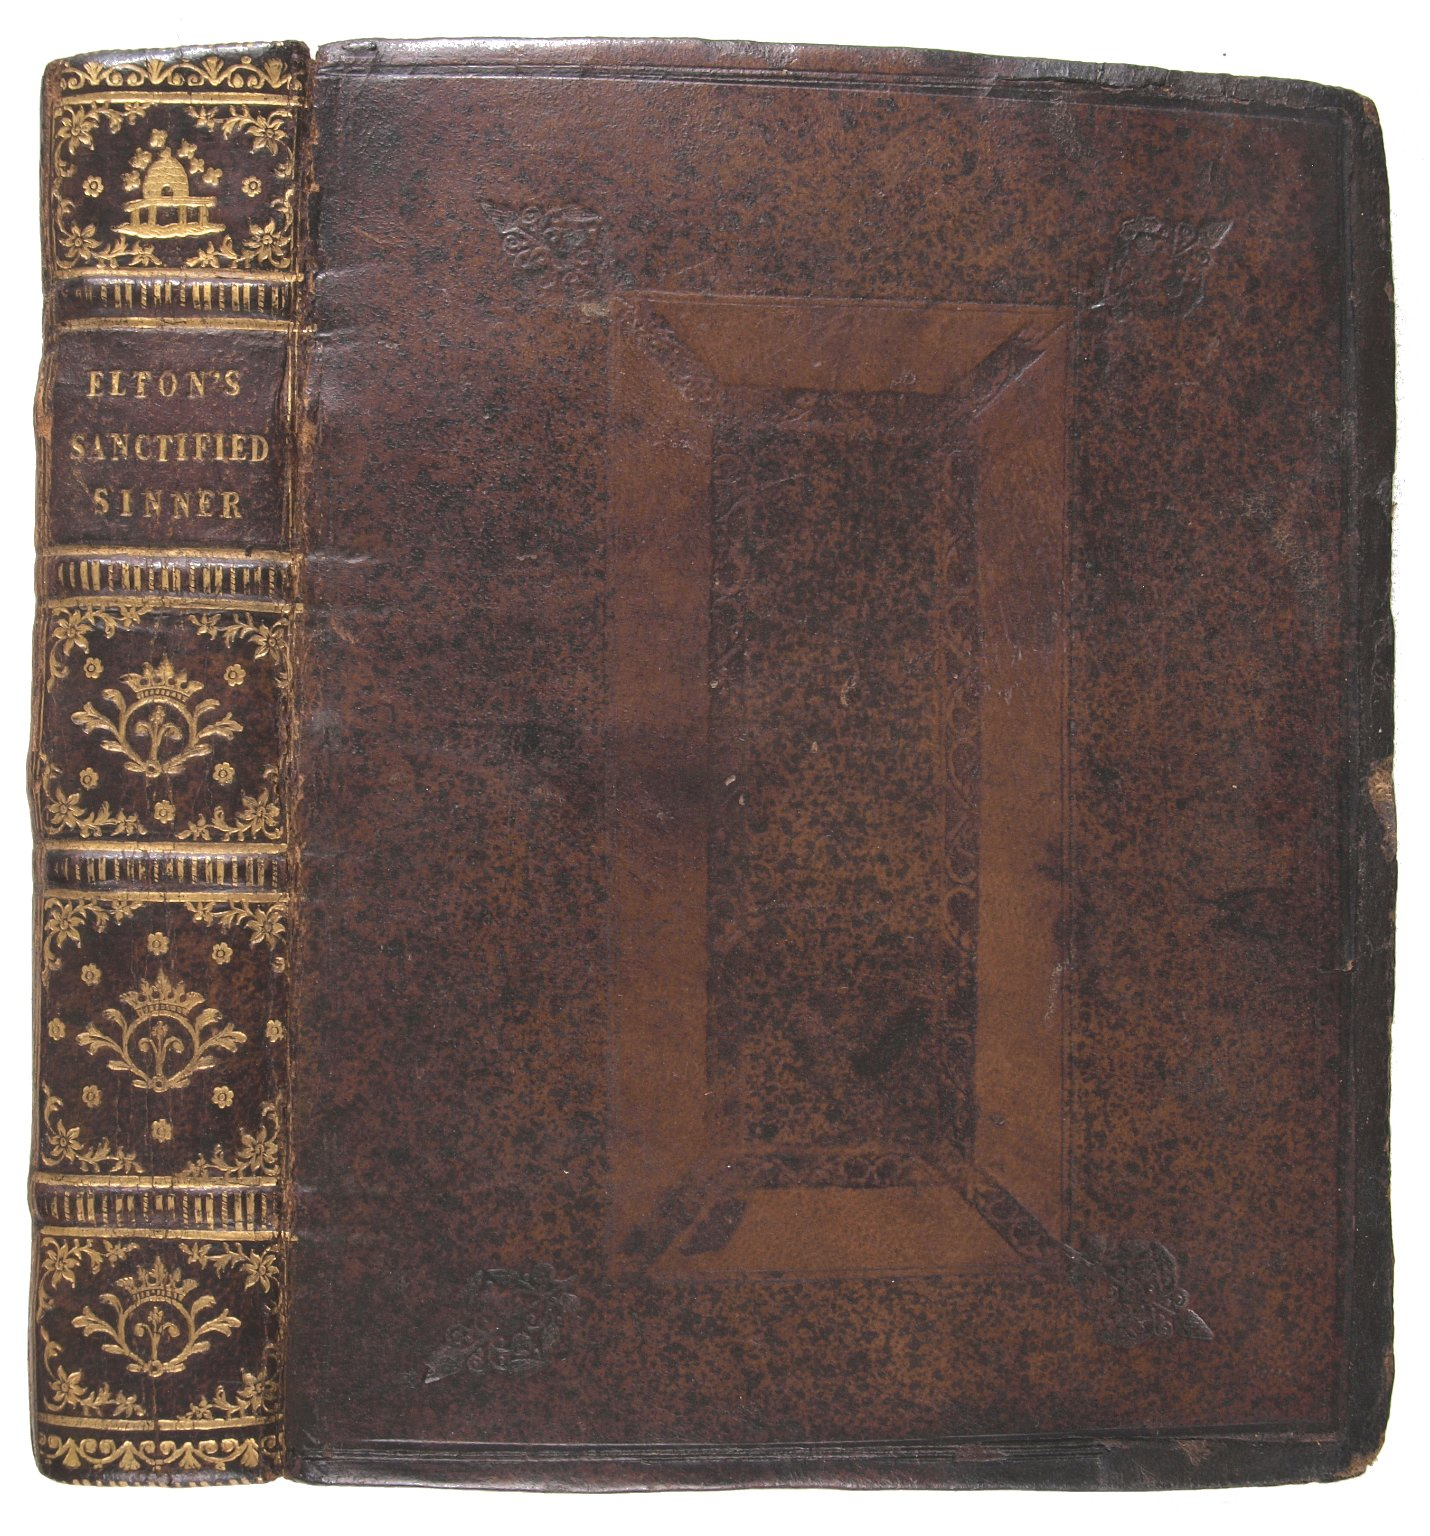 Front cover and spine, STC 7610.